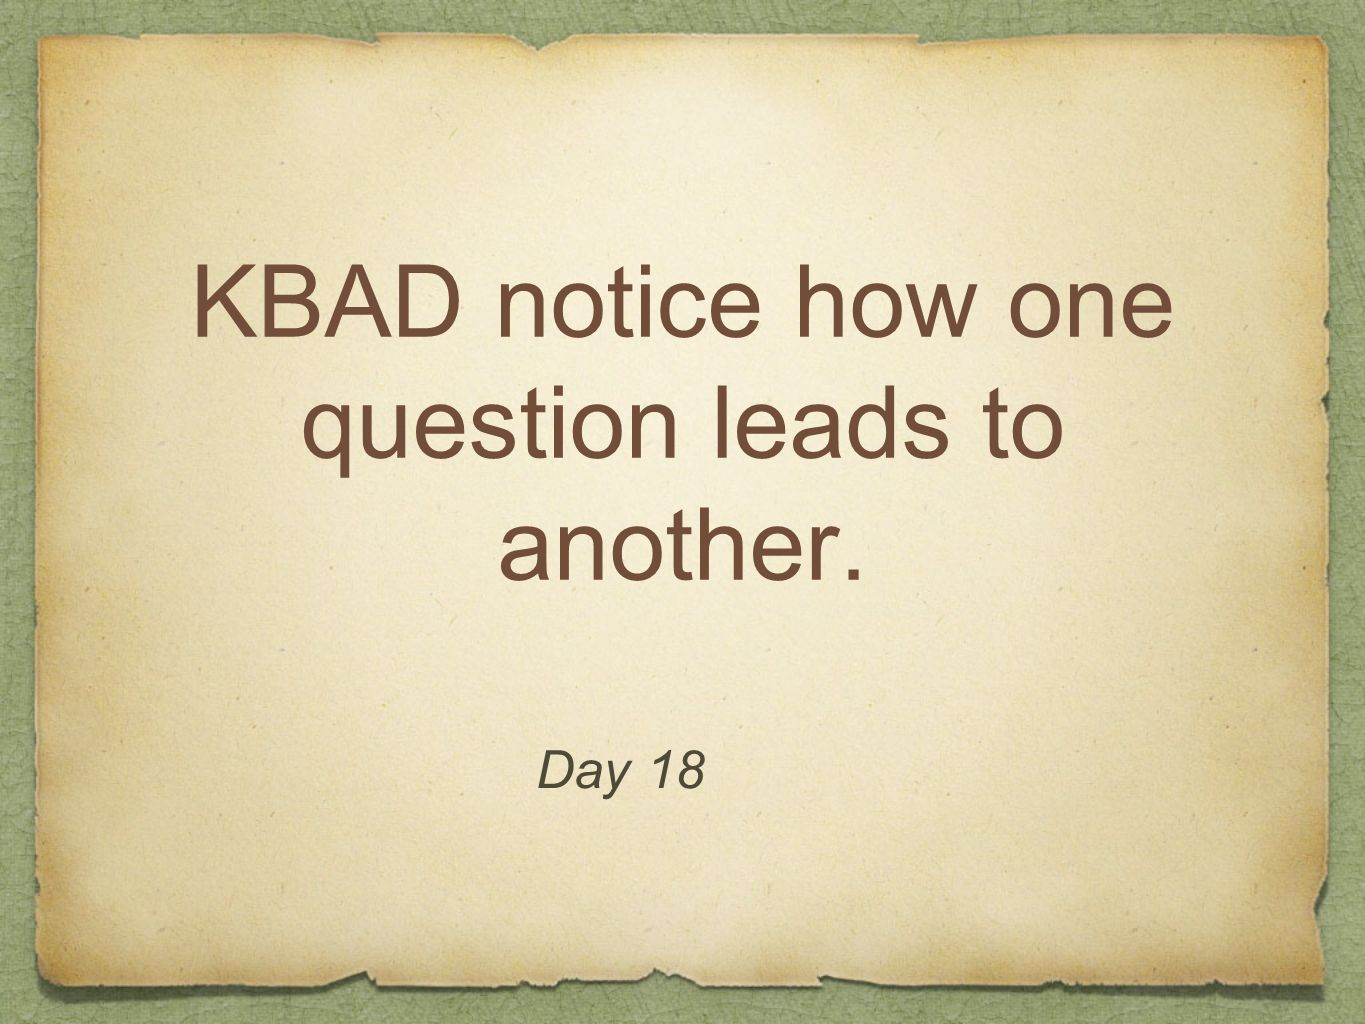 KBAD notice how one question leads to another.